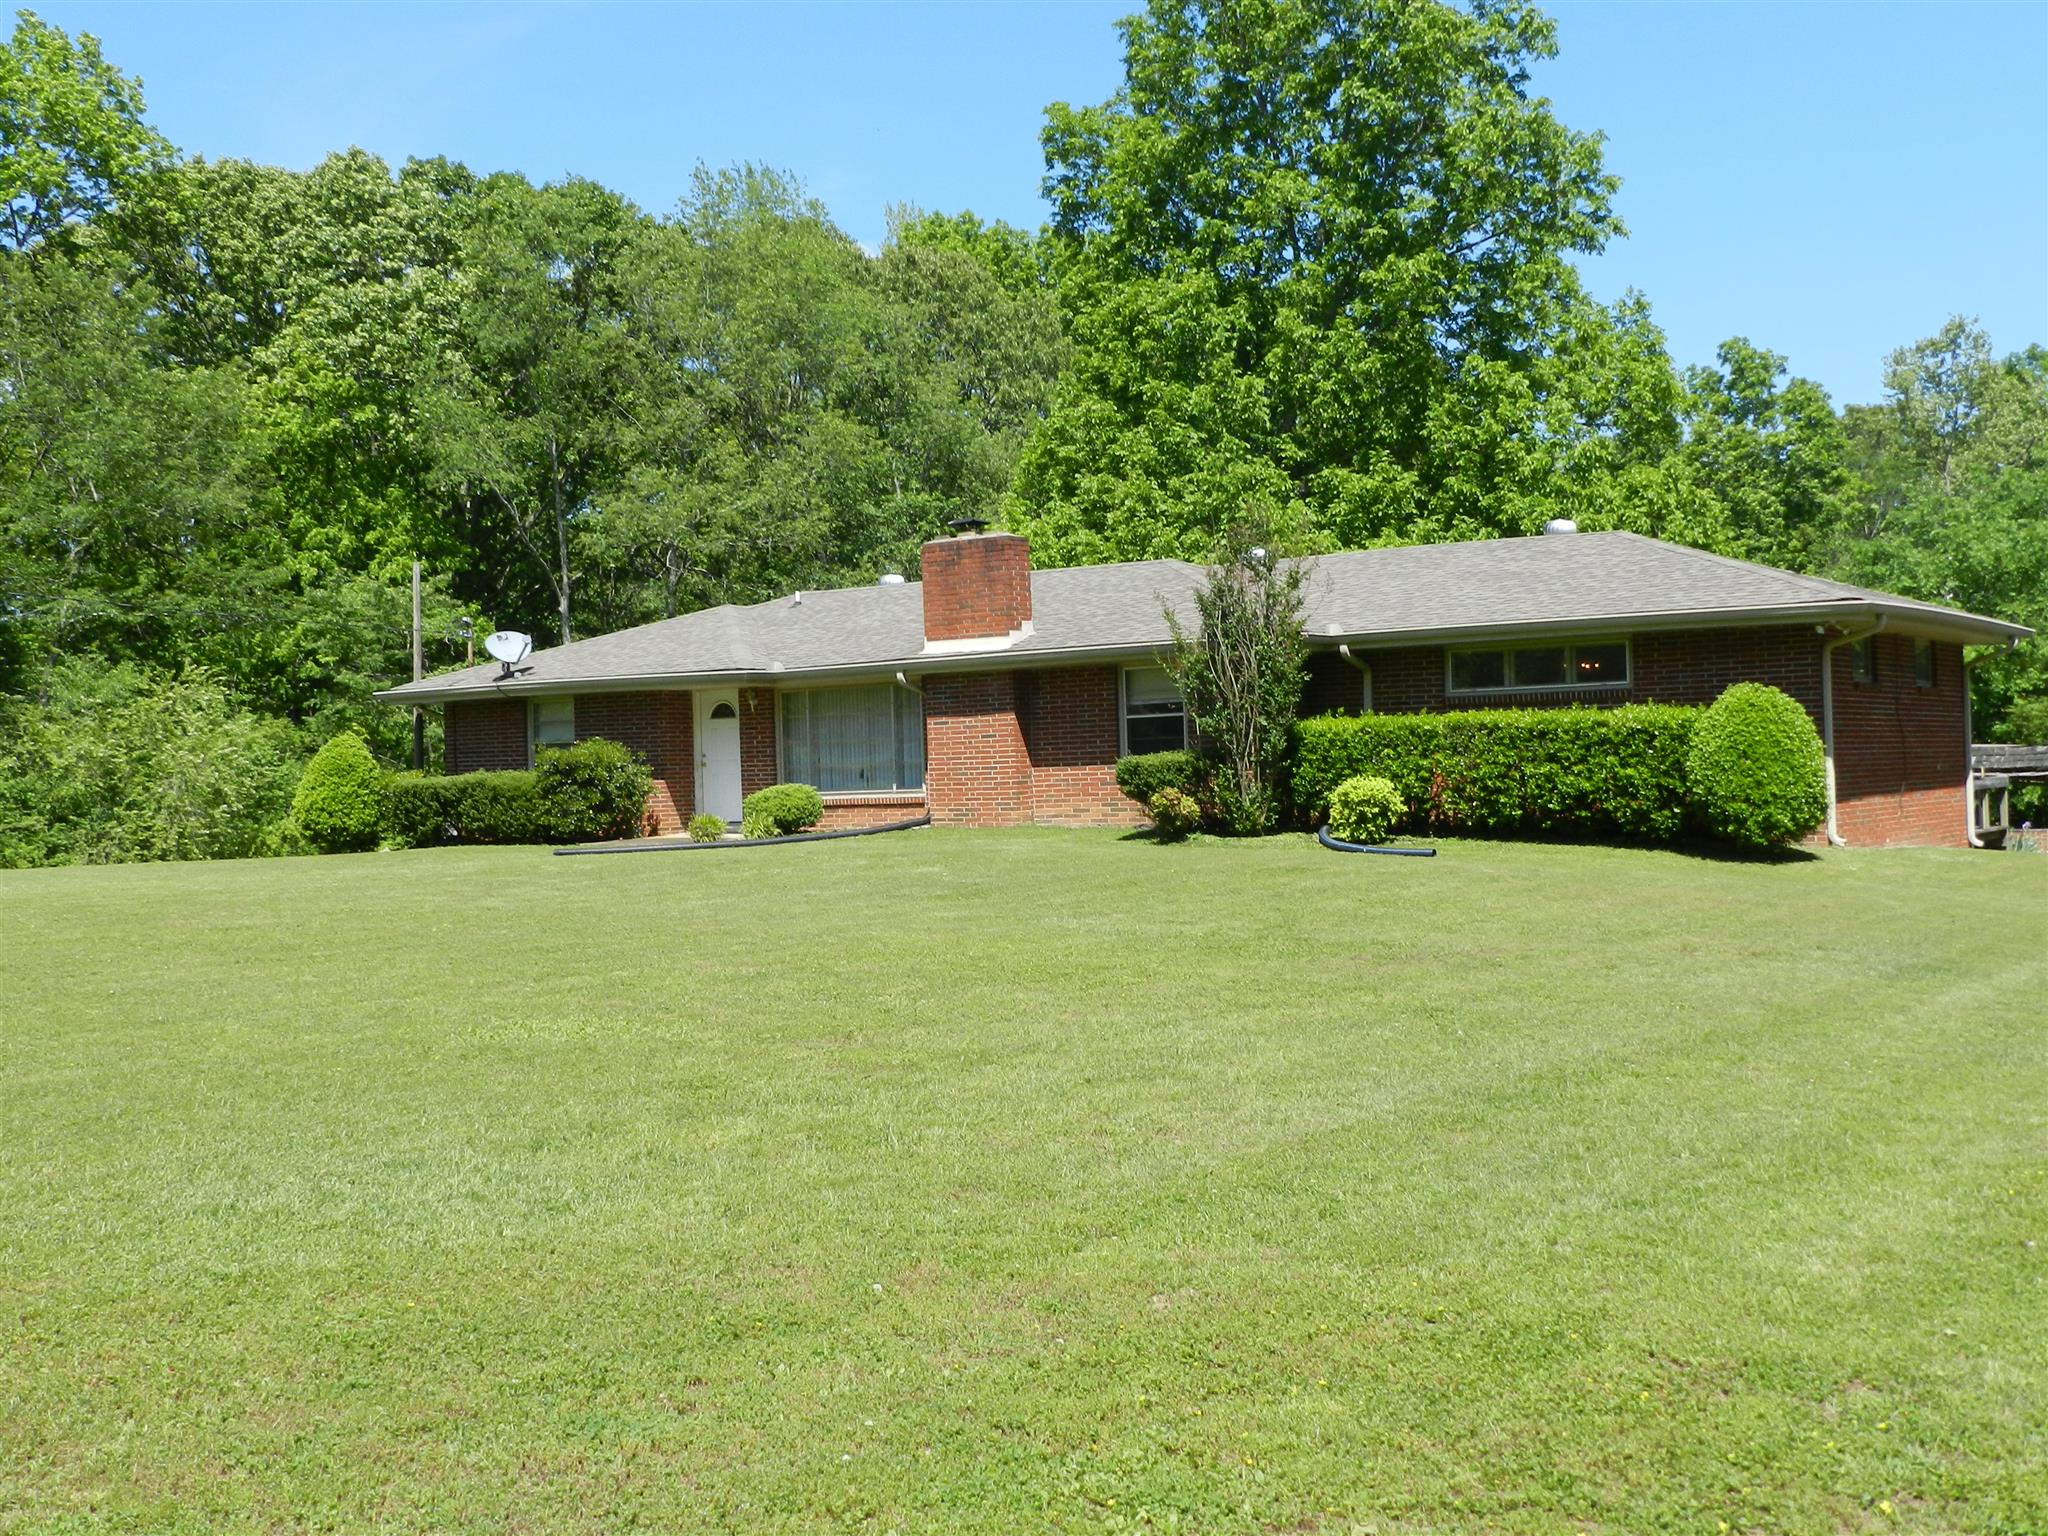 7107 Fernvale Rd, Fairview in Williamson County County, TN 37062 Home for Sale